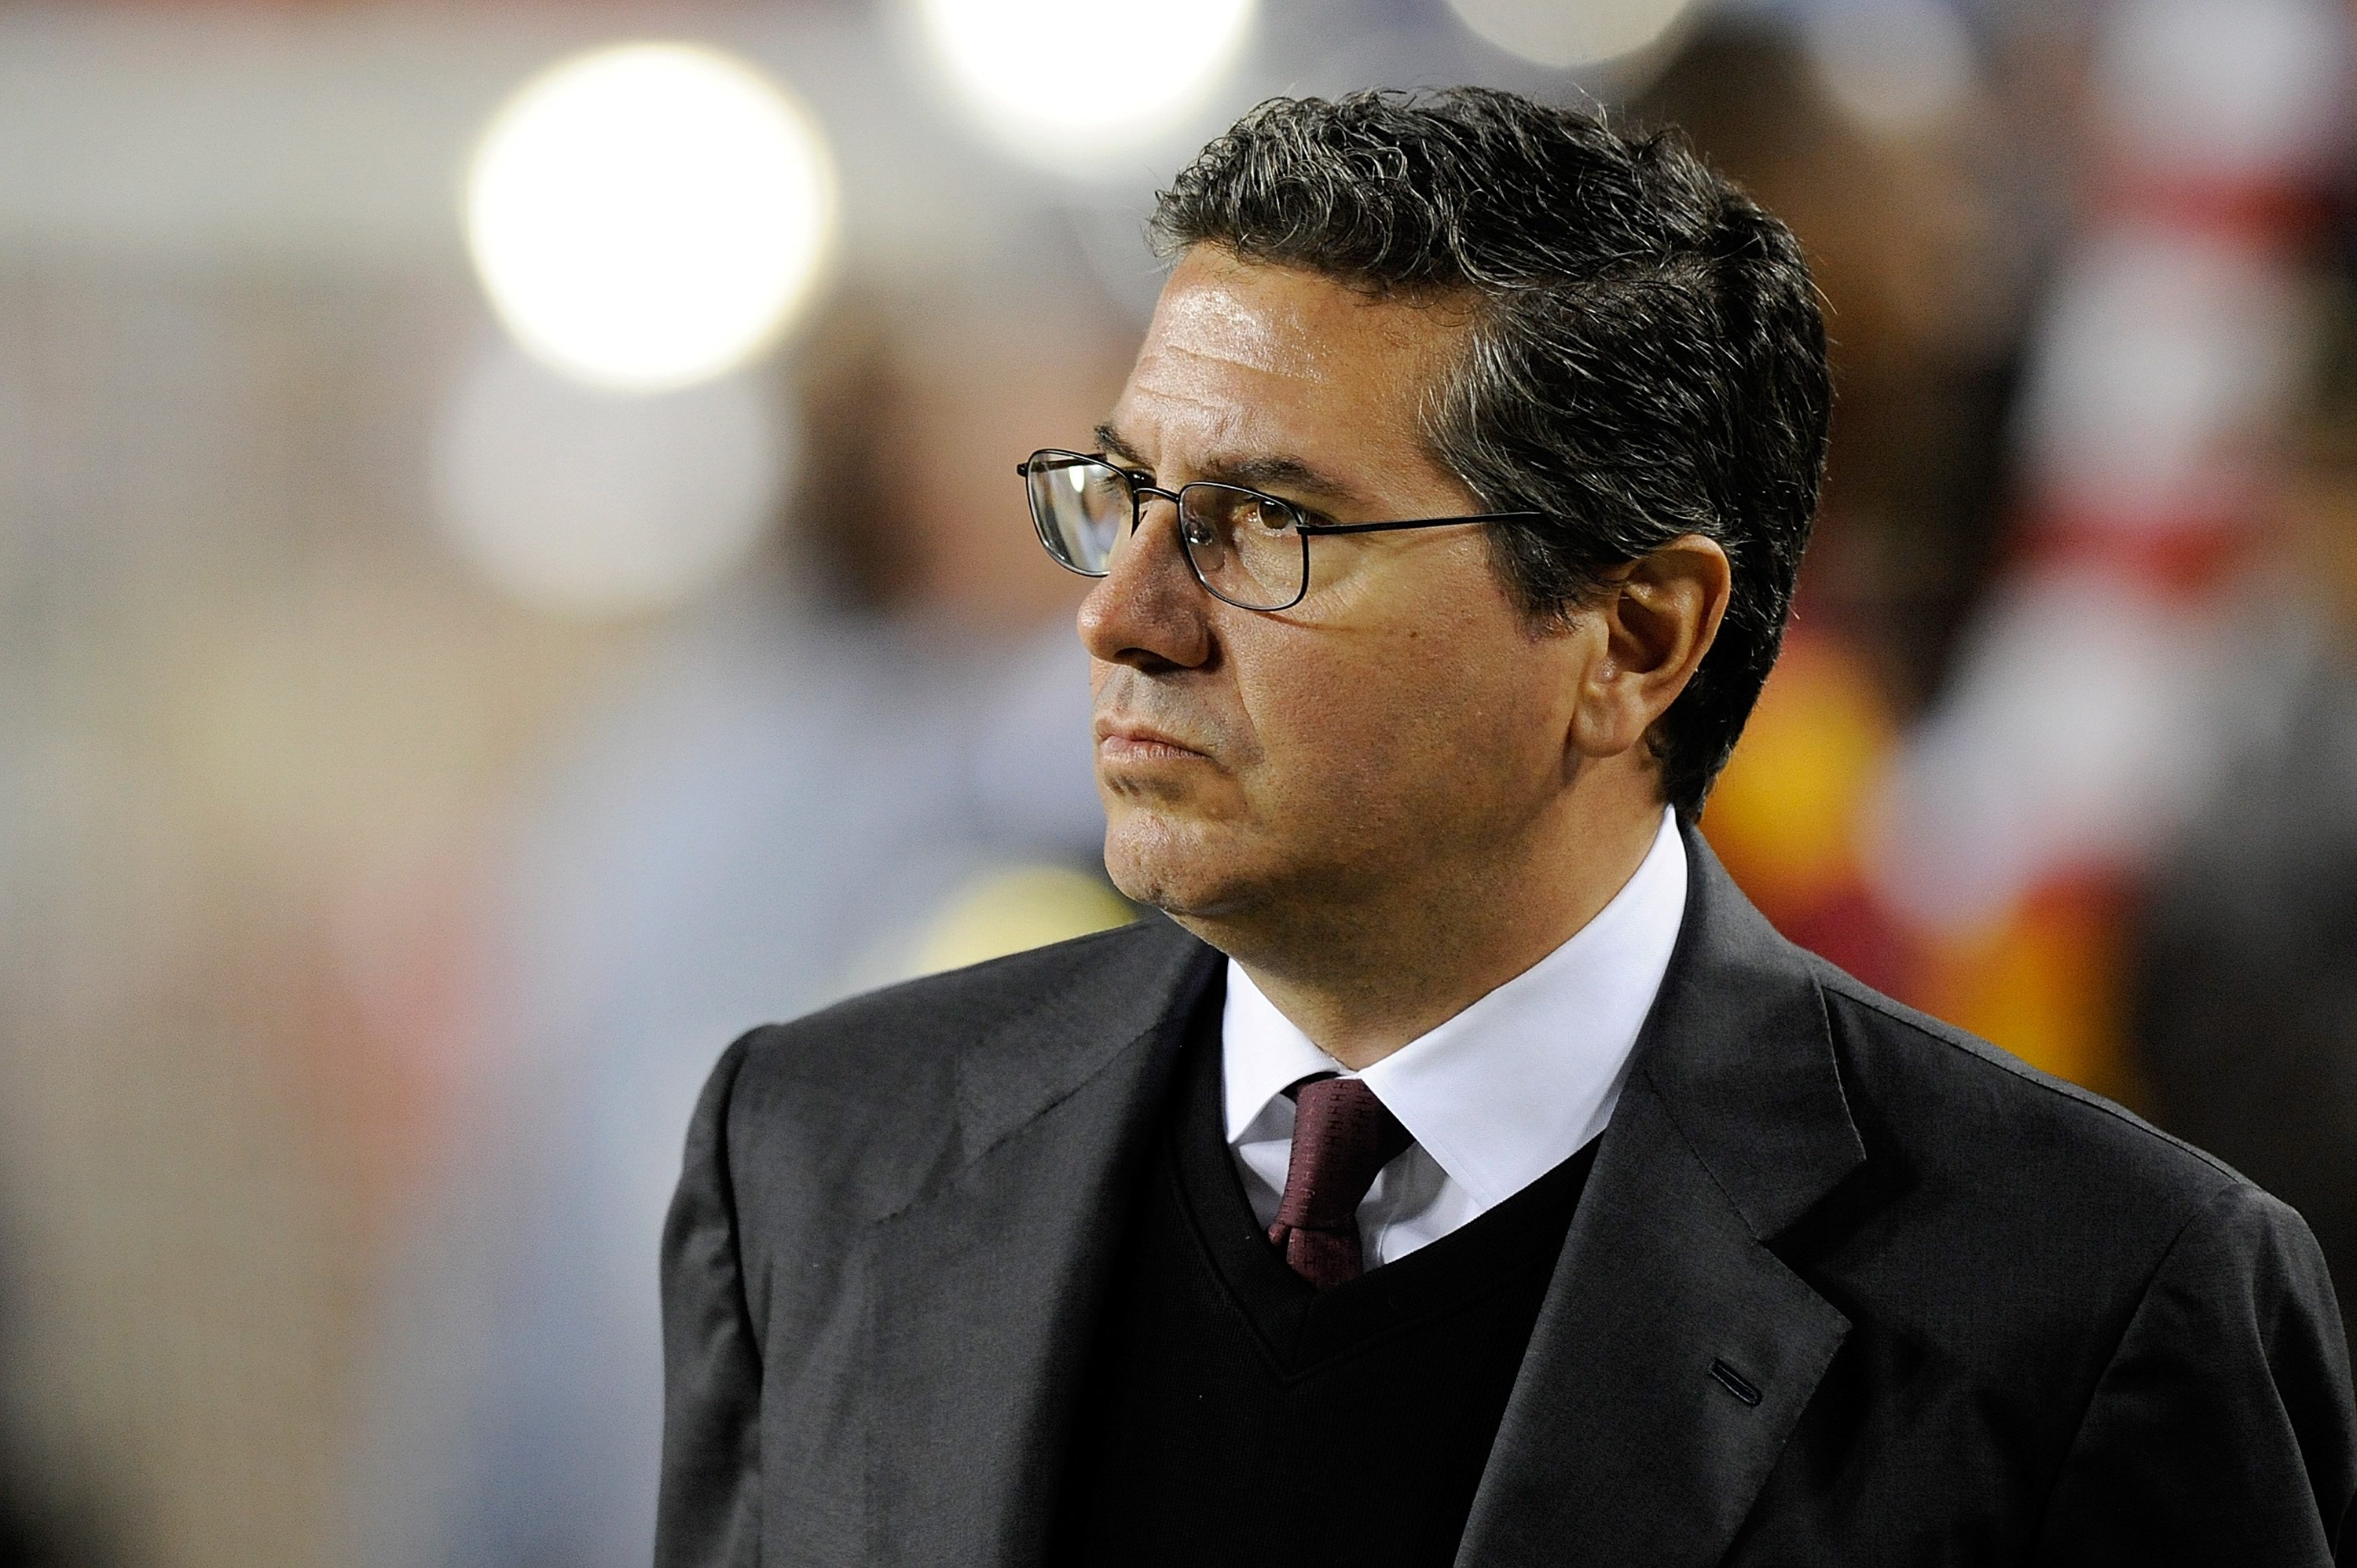 Redskins owner Daniel Snyder